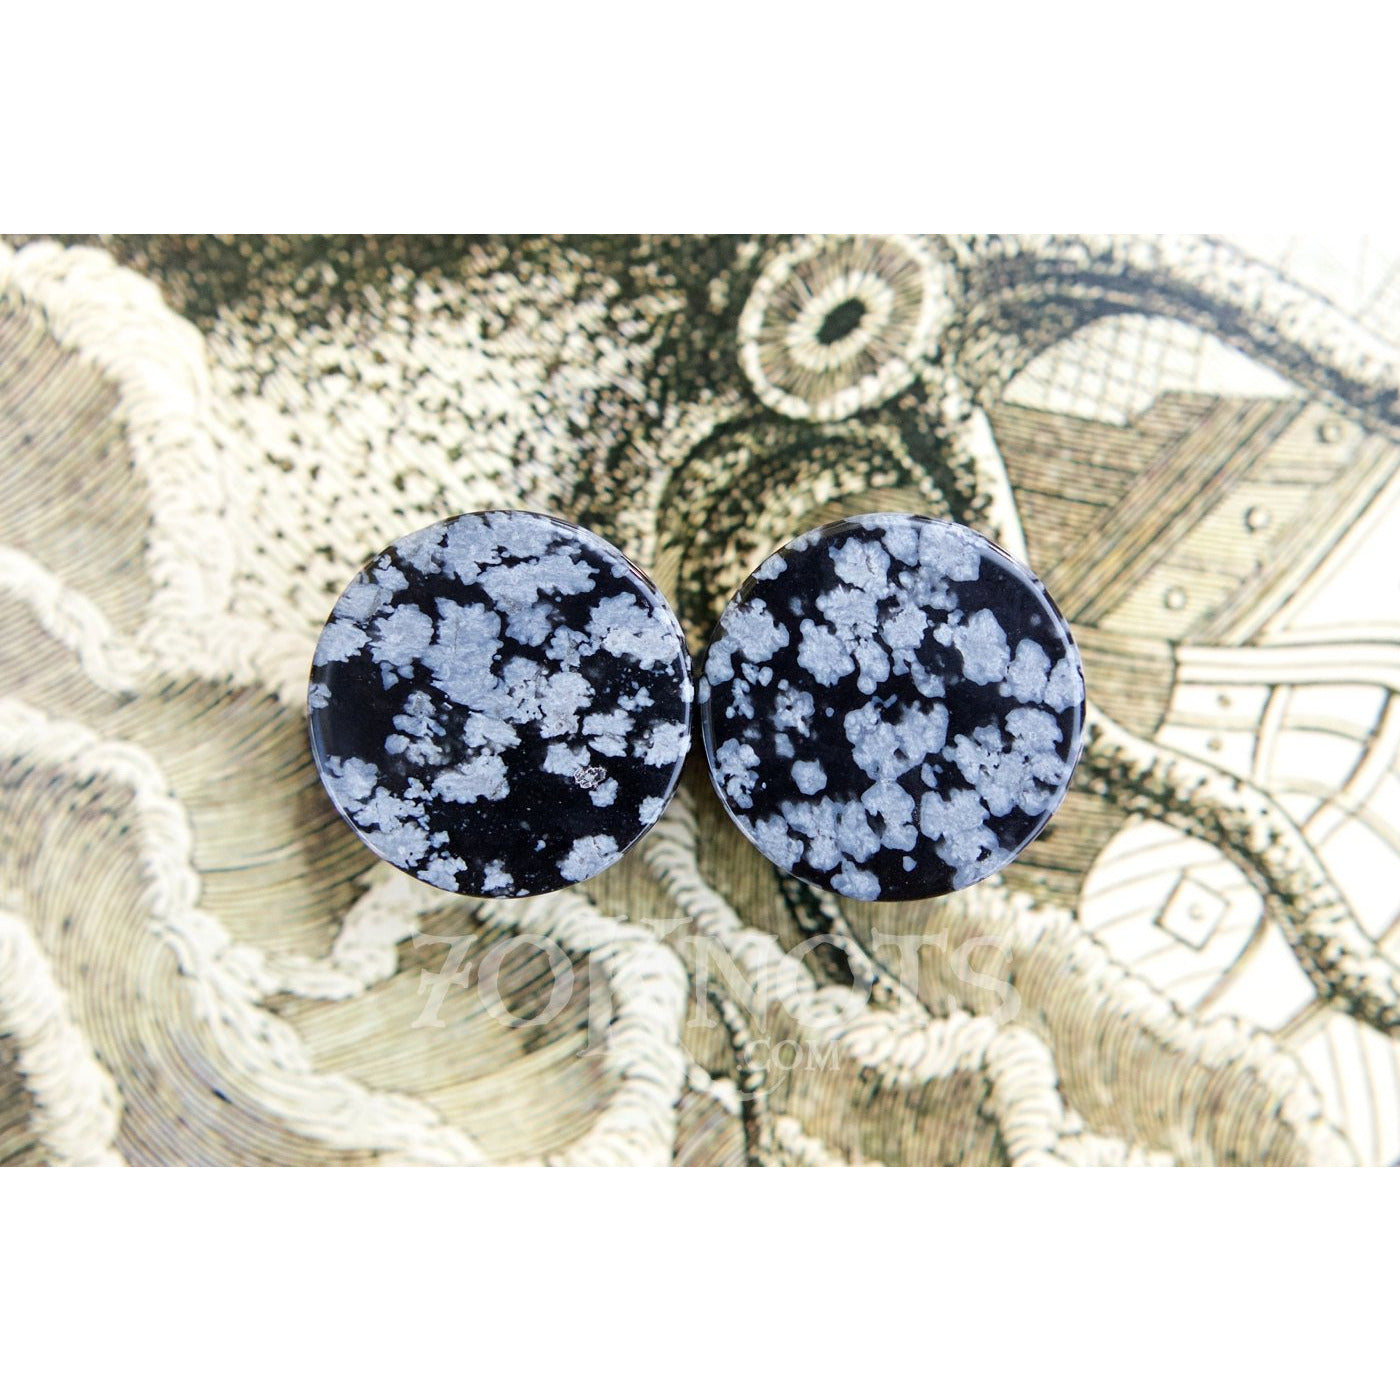 Snowflake Obsidian Double Flared Plugs, Pair - 70 Knots